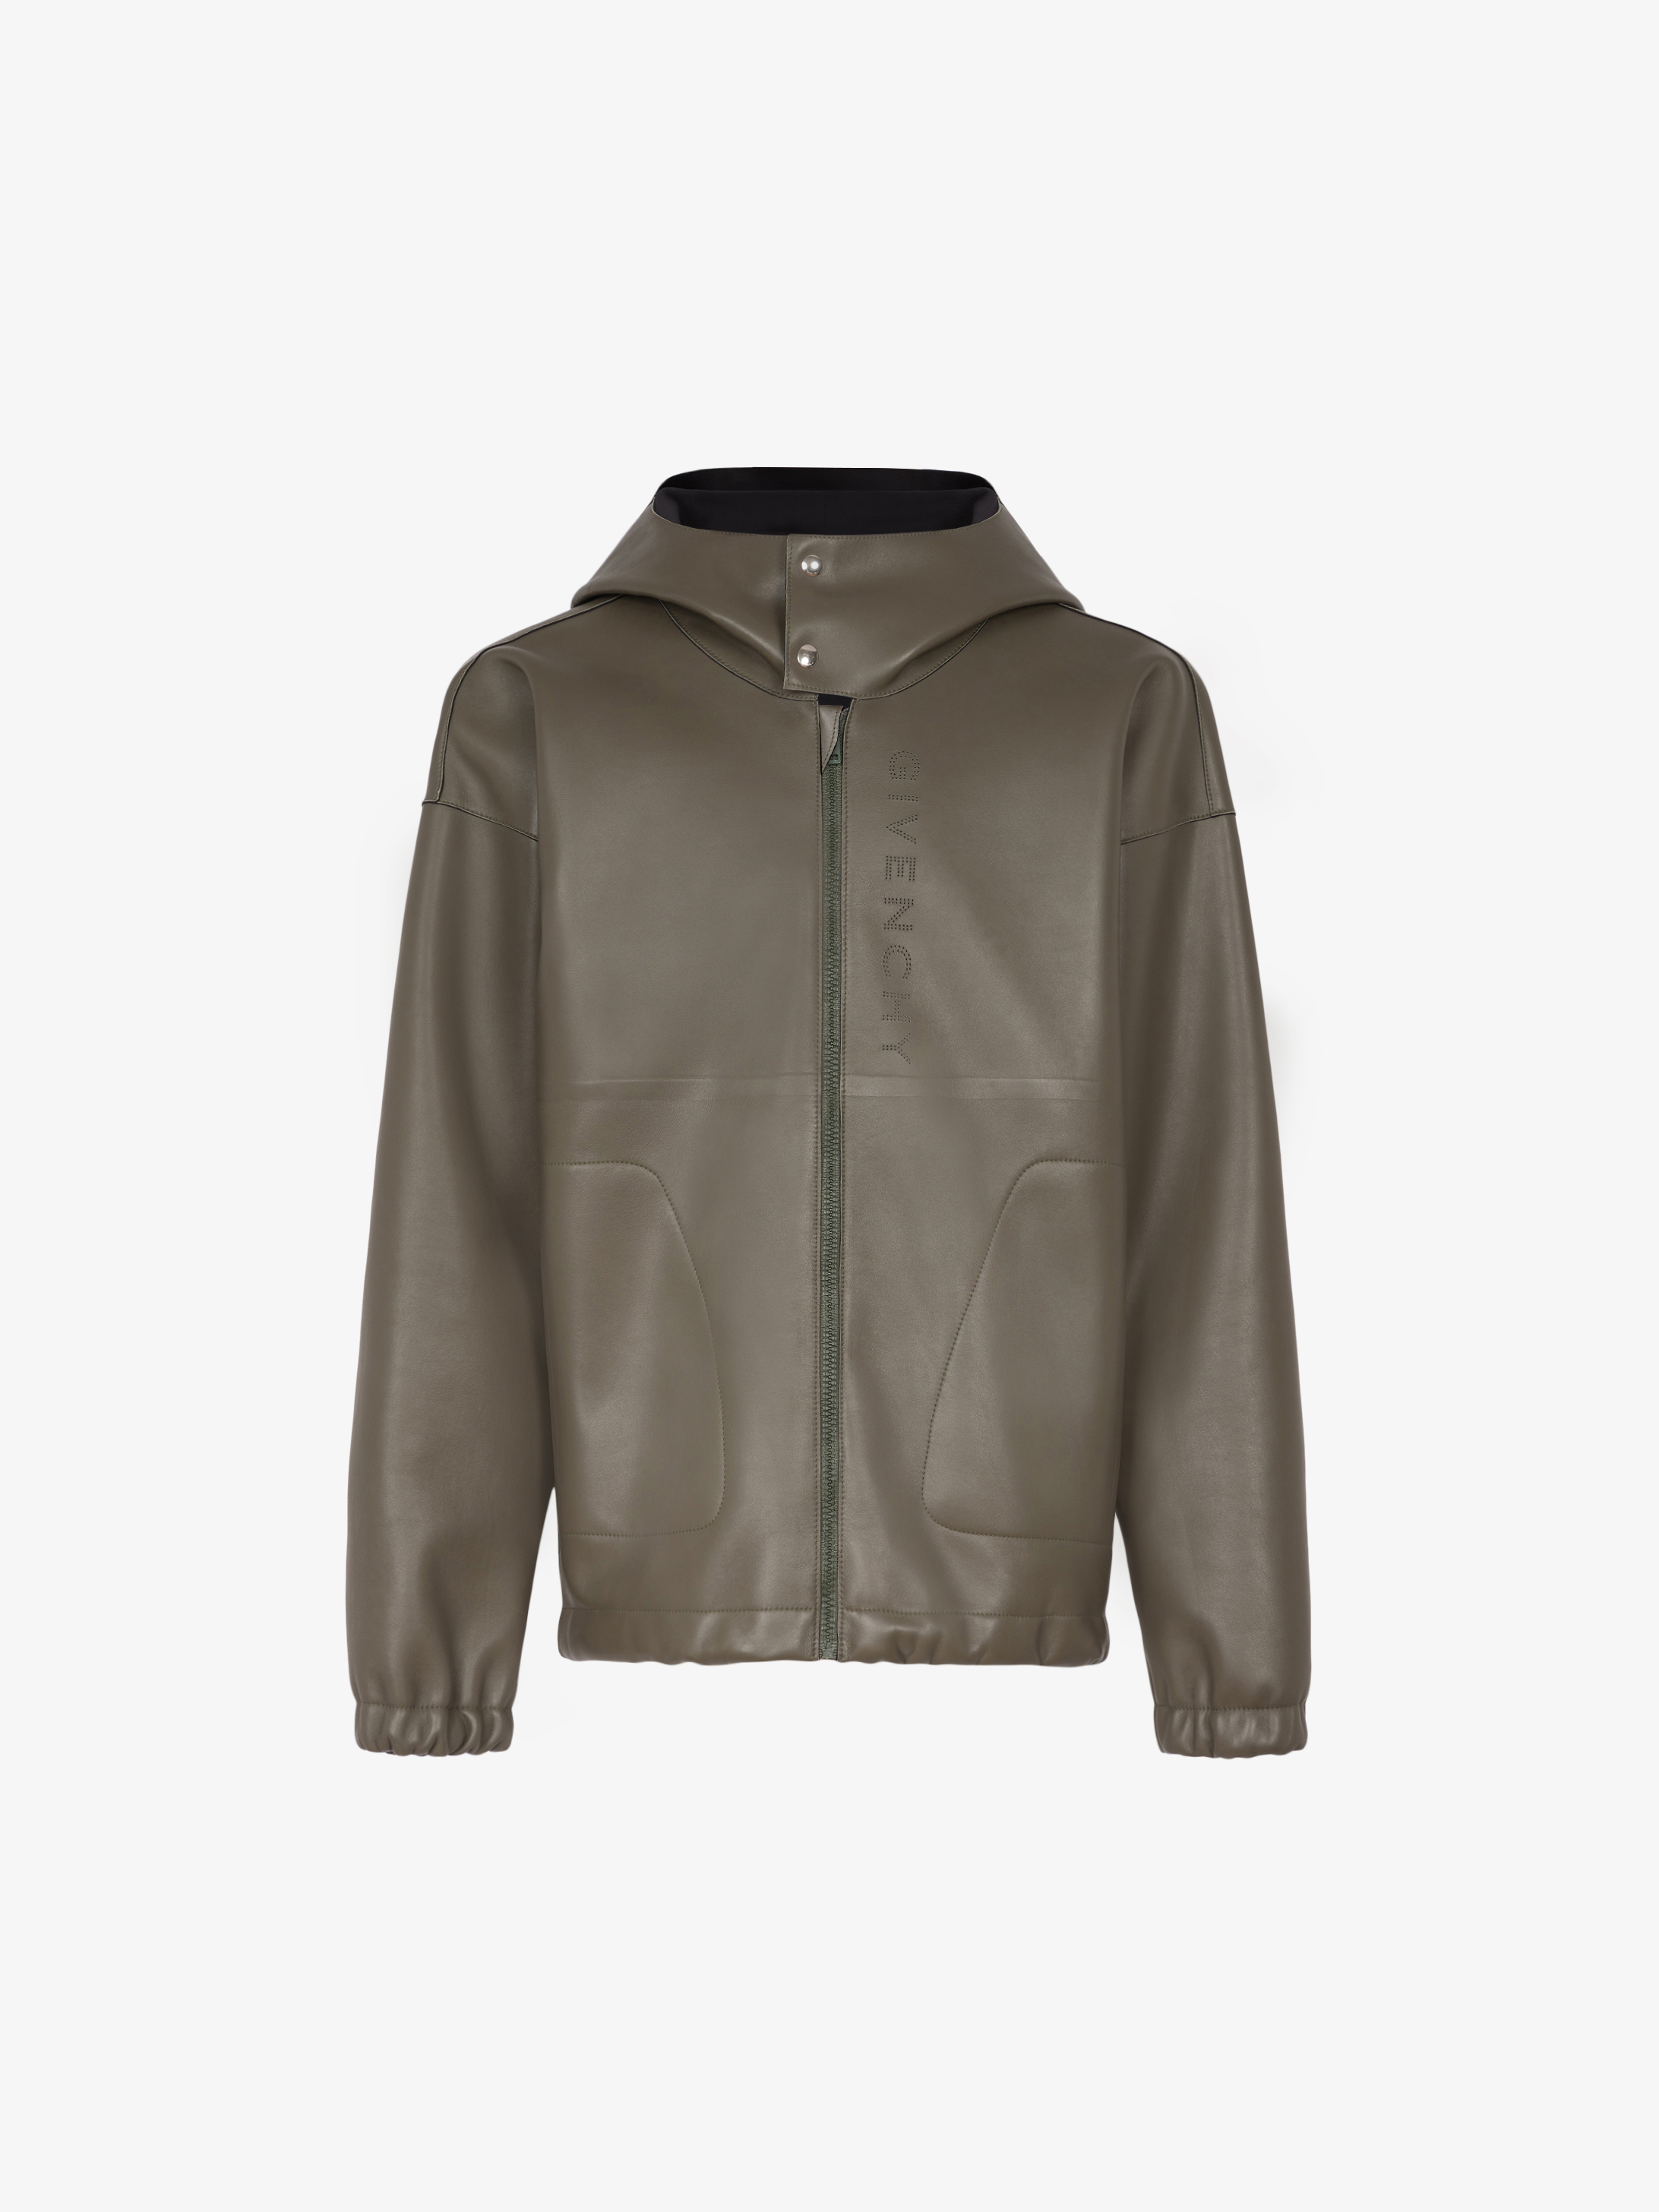 GIVENCHY hooded jacket in leather